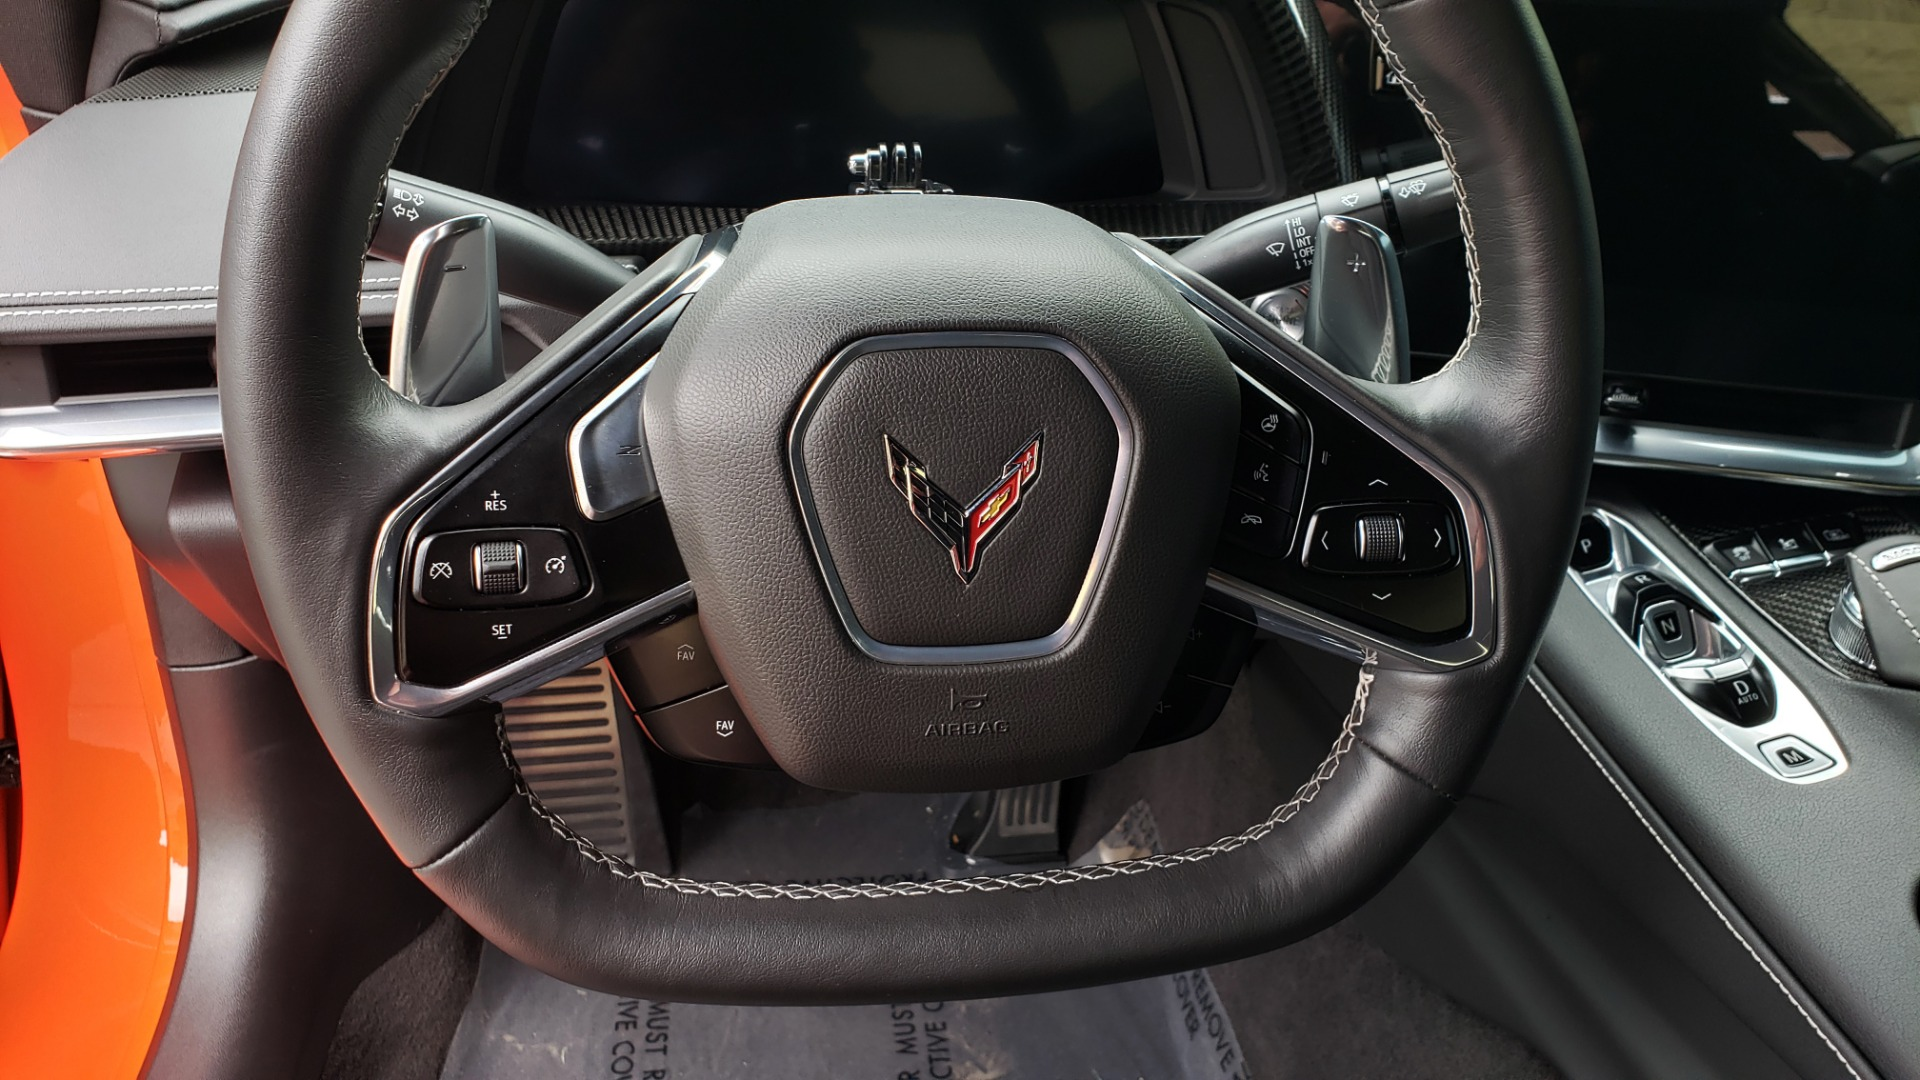 Used 2020 Chevrolet CORVETTE C8 STINGRAY 2LT / 6.2L V8 / 8-SPD AUTO / NAV / BOSE / REARVIEW / DATA RECOR for sale Sold at Formula Imports in Charlotte NC 28227 43